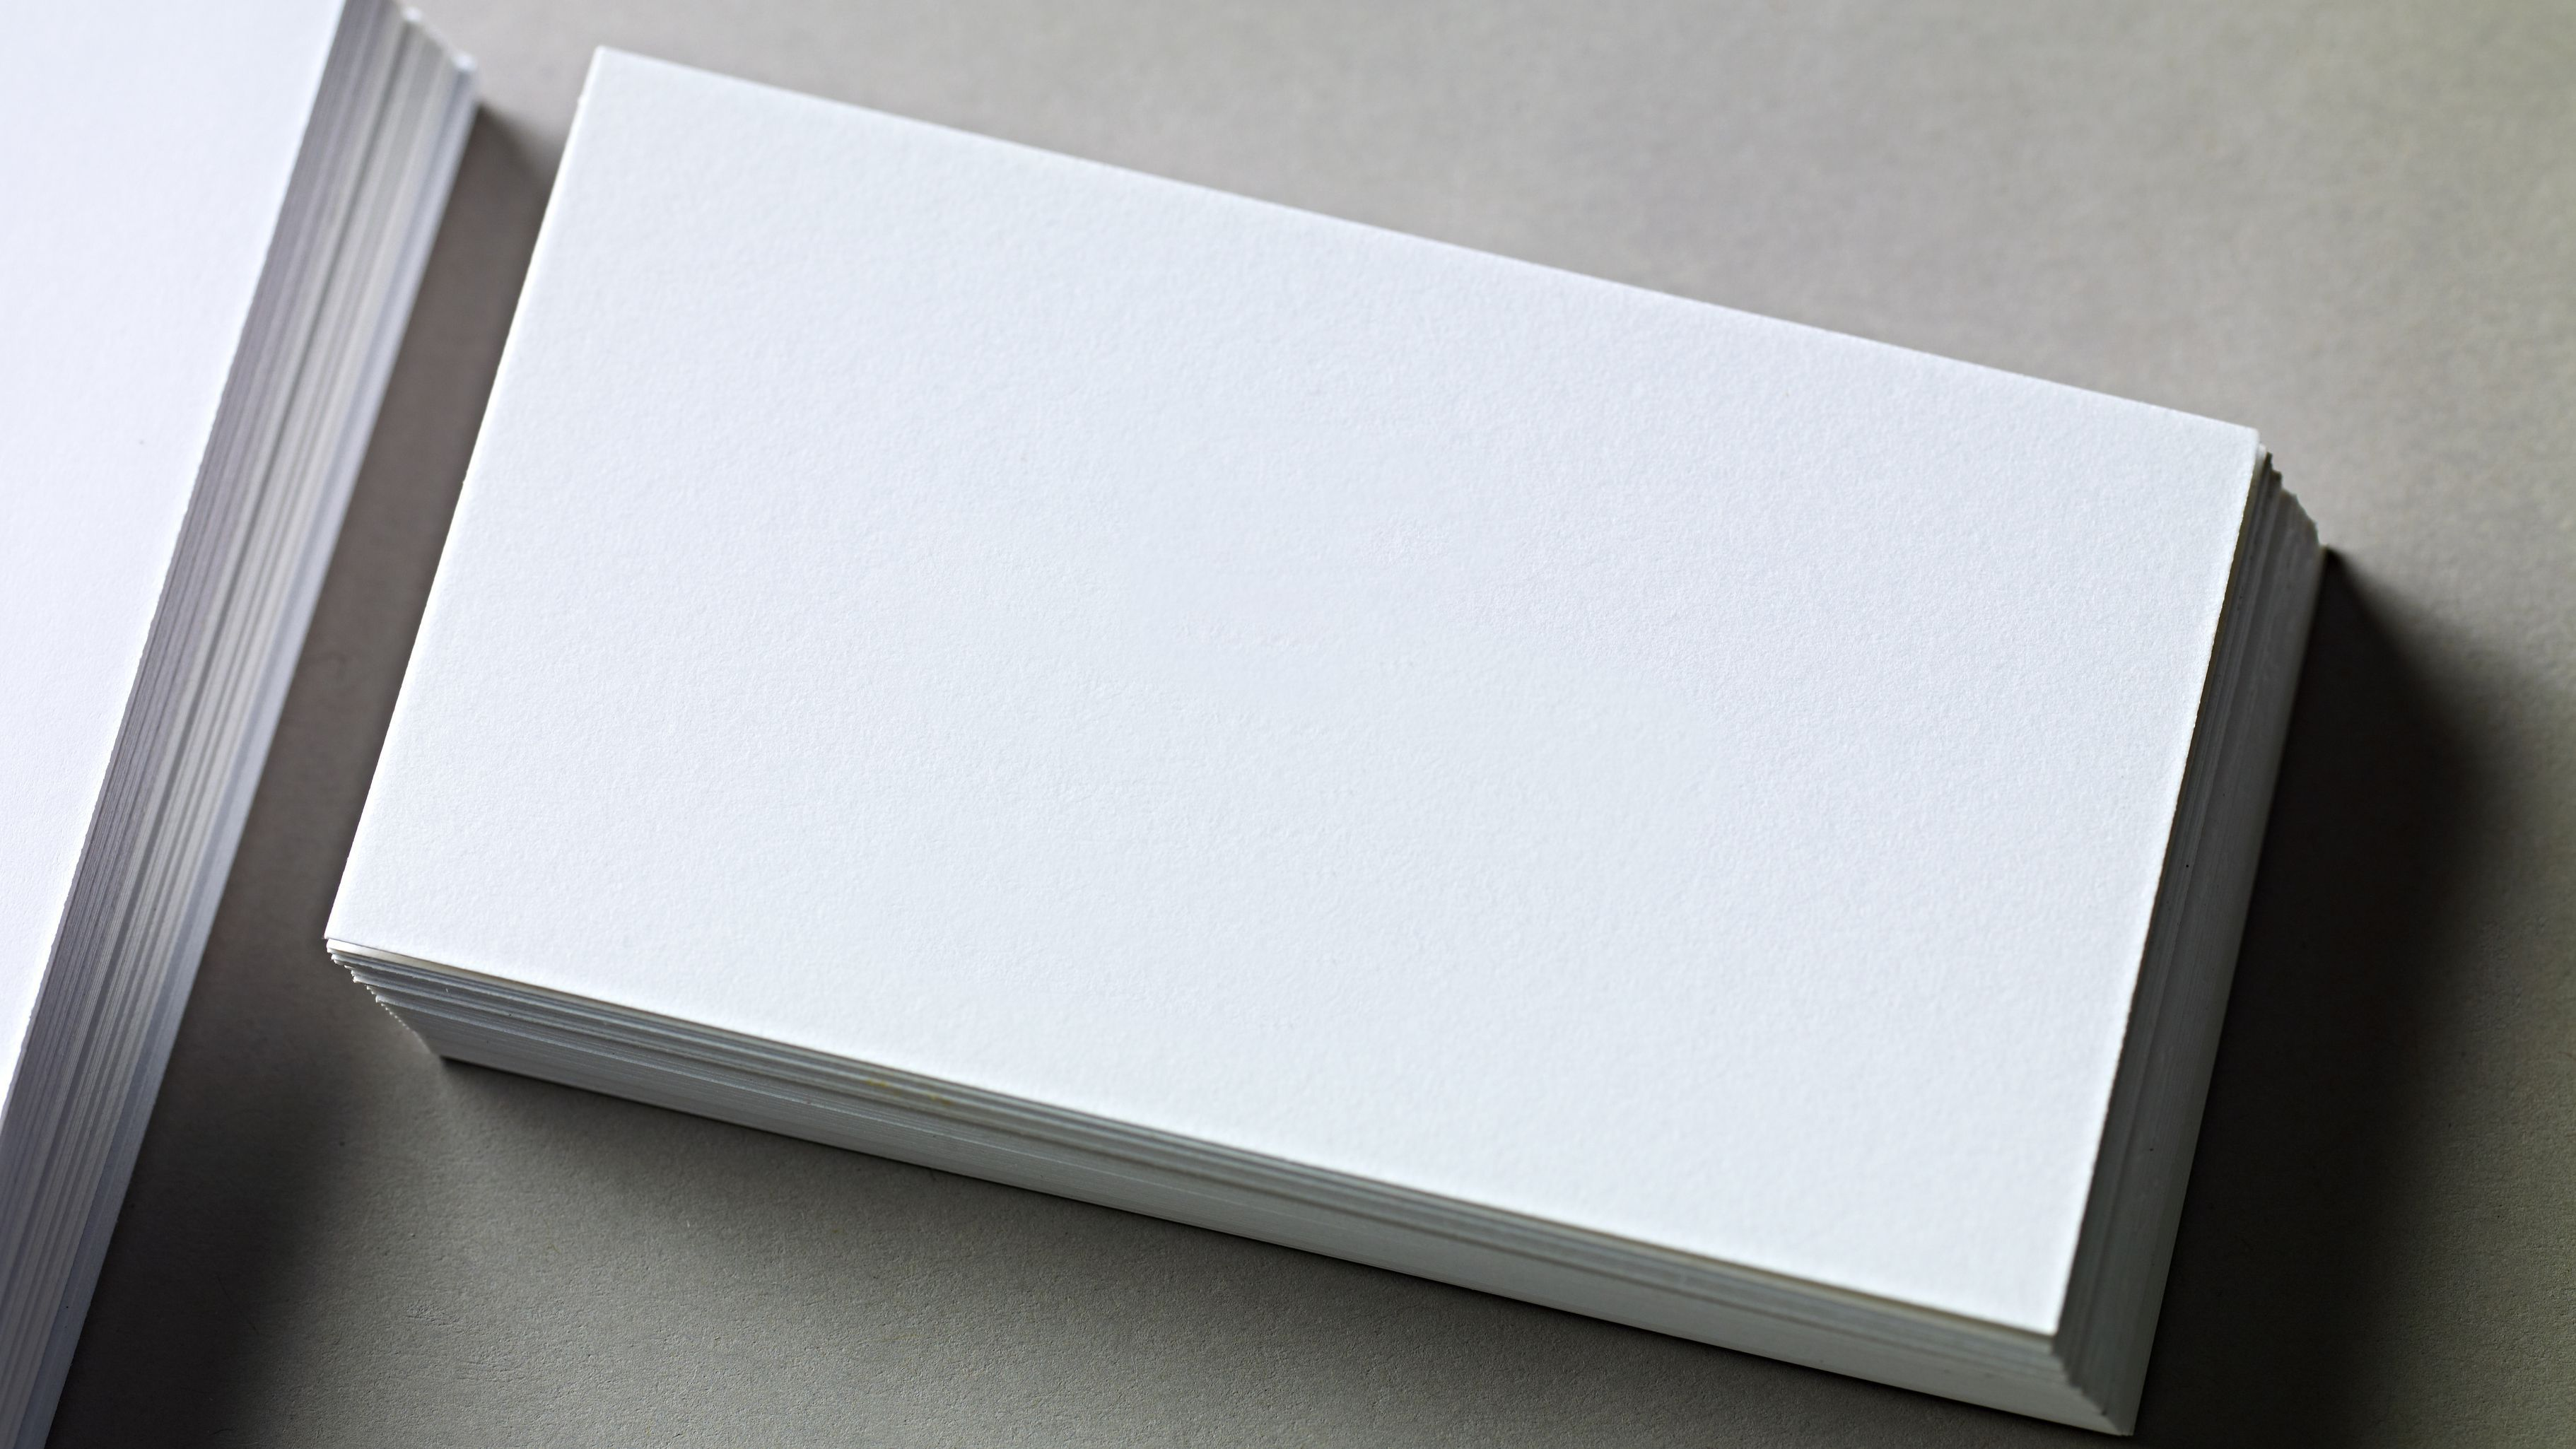 006 Best Plain Busines Card Template Concept  White Free Download Blank Printable Word 2010Full